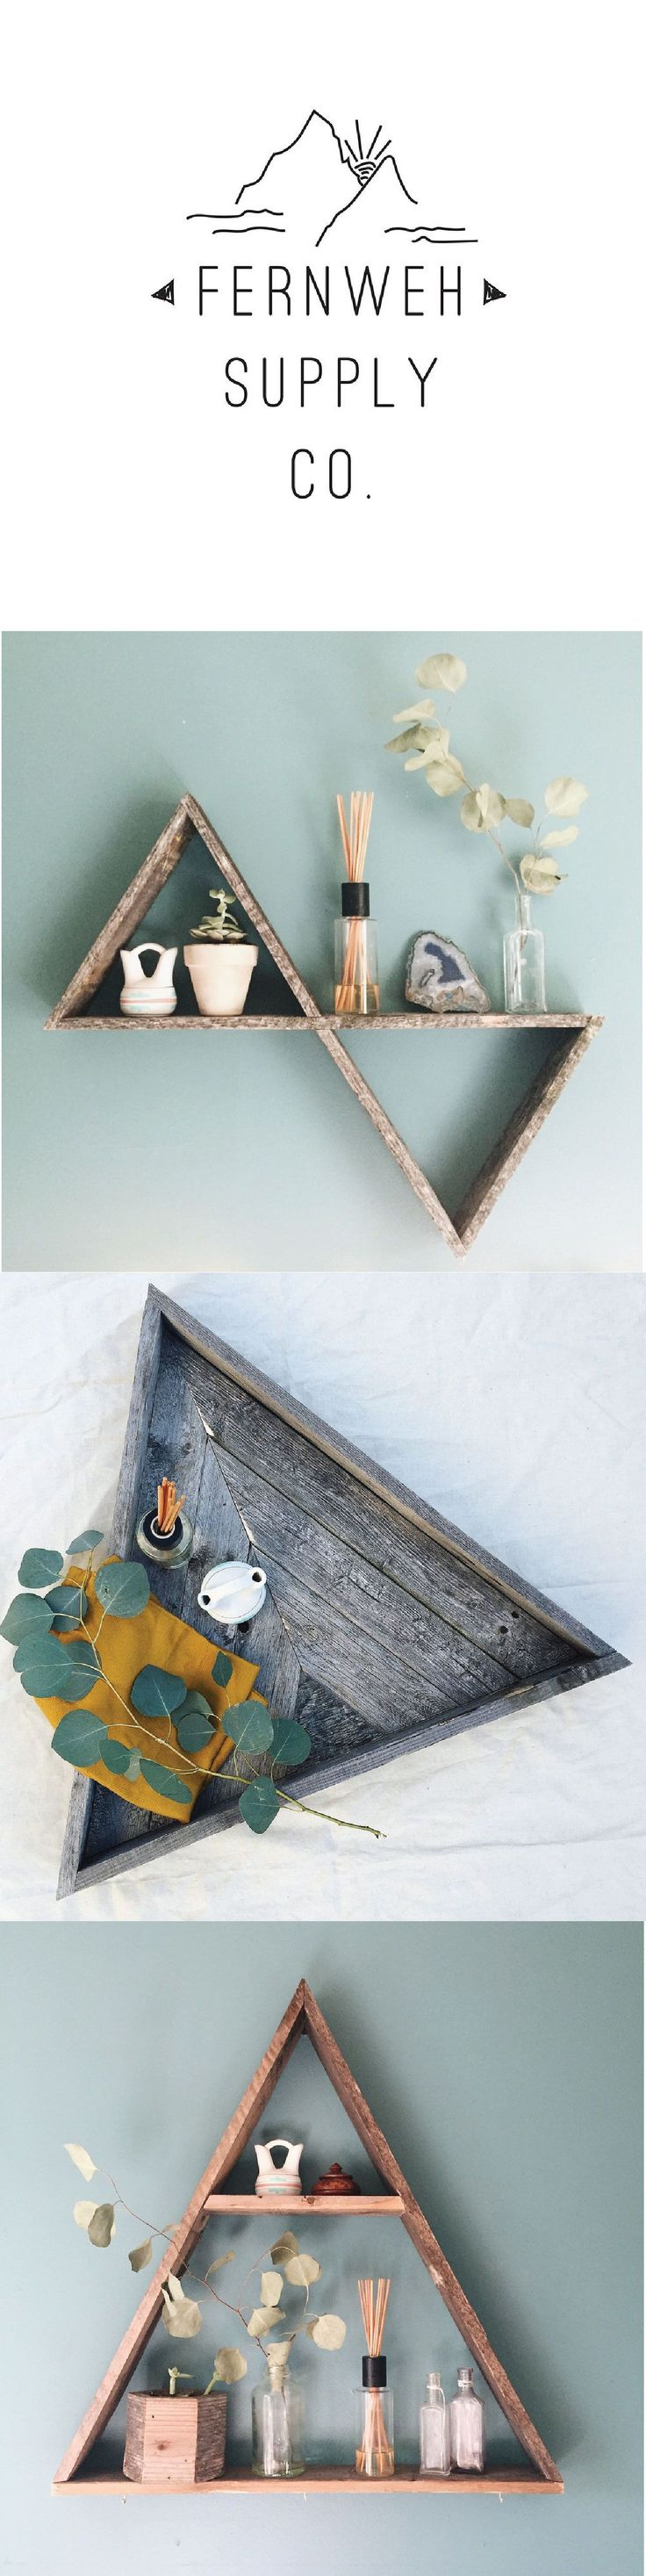 Fernweh Supply Company sells Handcrafted Reclaimed Pallet Wood Home Goods. Click the link to shop Triangle Shelves, Hexagon Shelves, Breakfast Trays, Planters, Hanging Shelves and so much more! Home Decor Inspo!